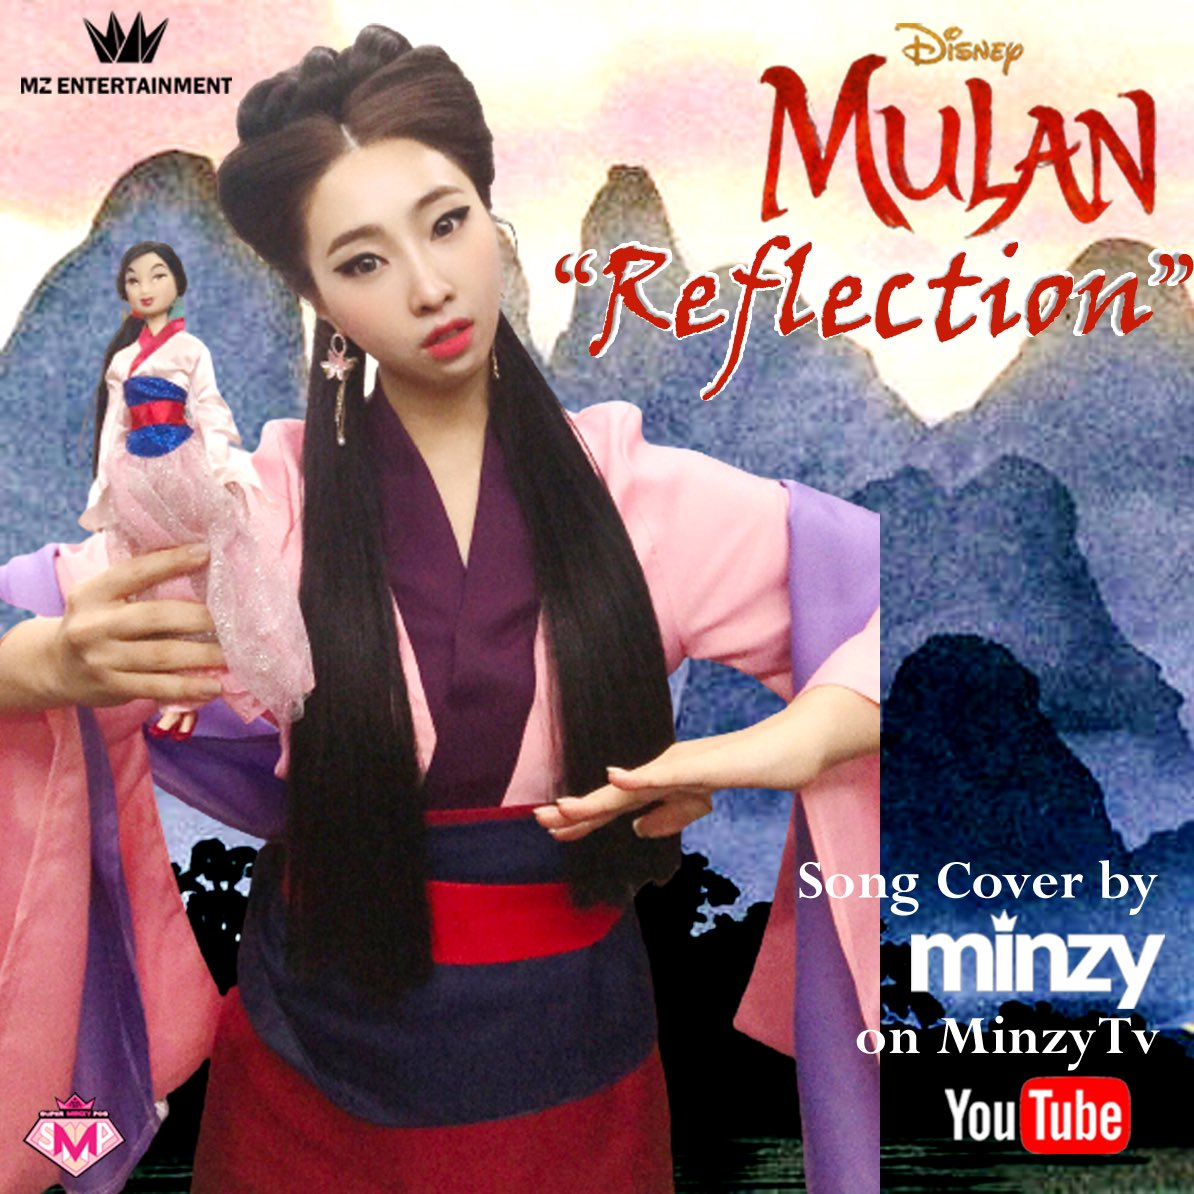 "Minzy ""Reflection"" Song Cover Disney Mulan soundtrack! Out Now!!   Watch the full video at Minzy Tv Youtube Channel   @mingkki21 #minzy #mulanzy #disney #songcover #mulan #2ne1"